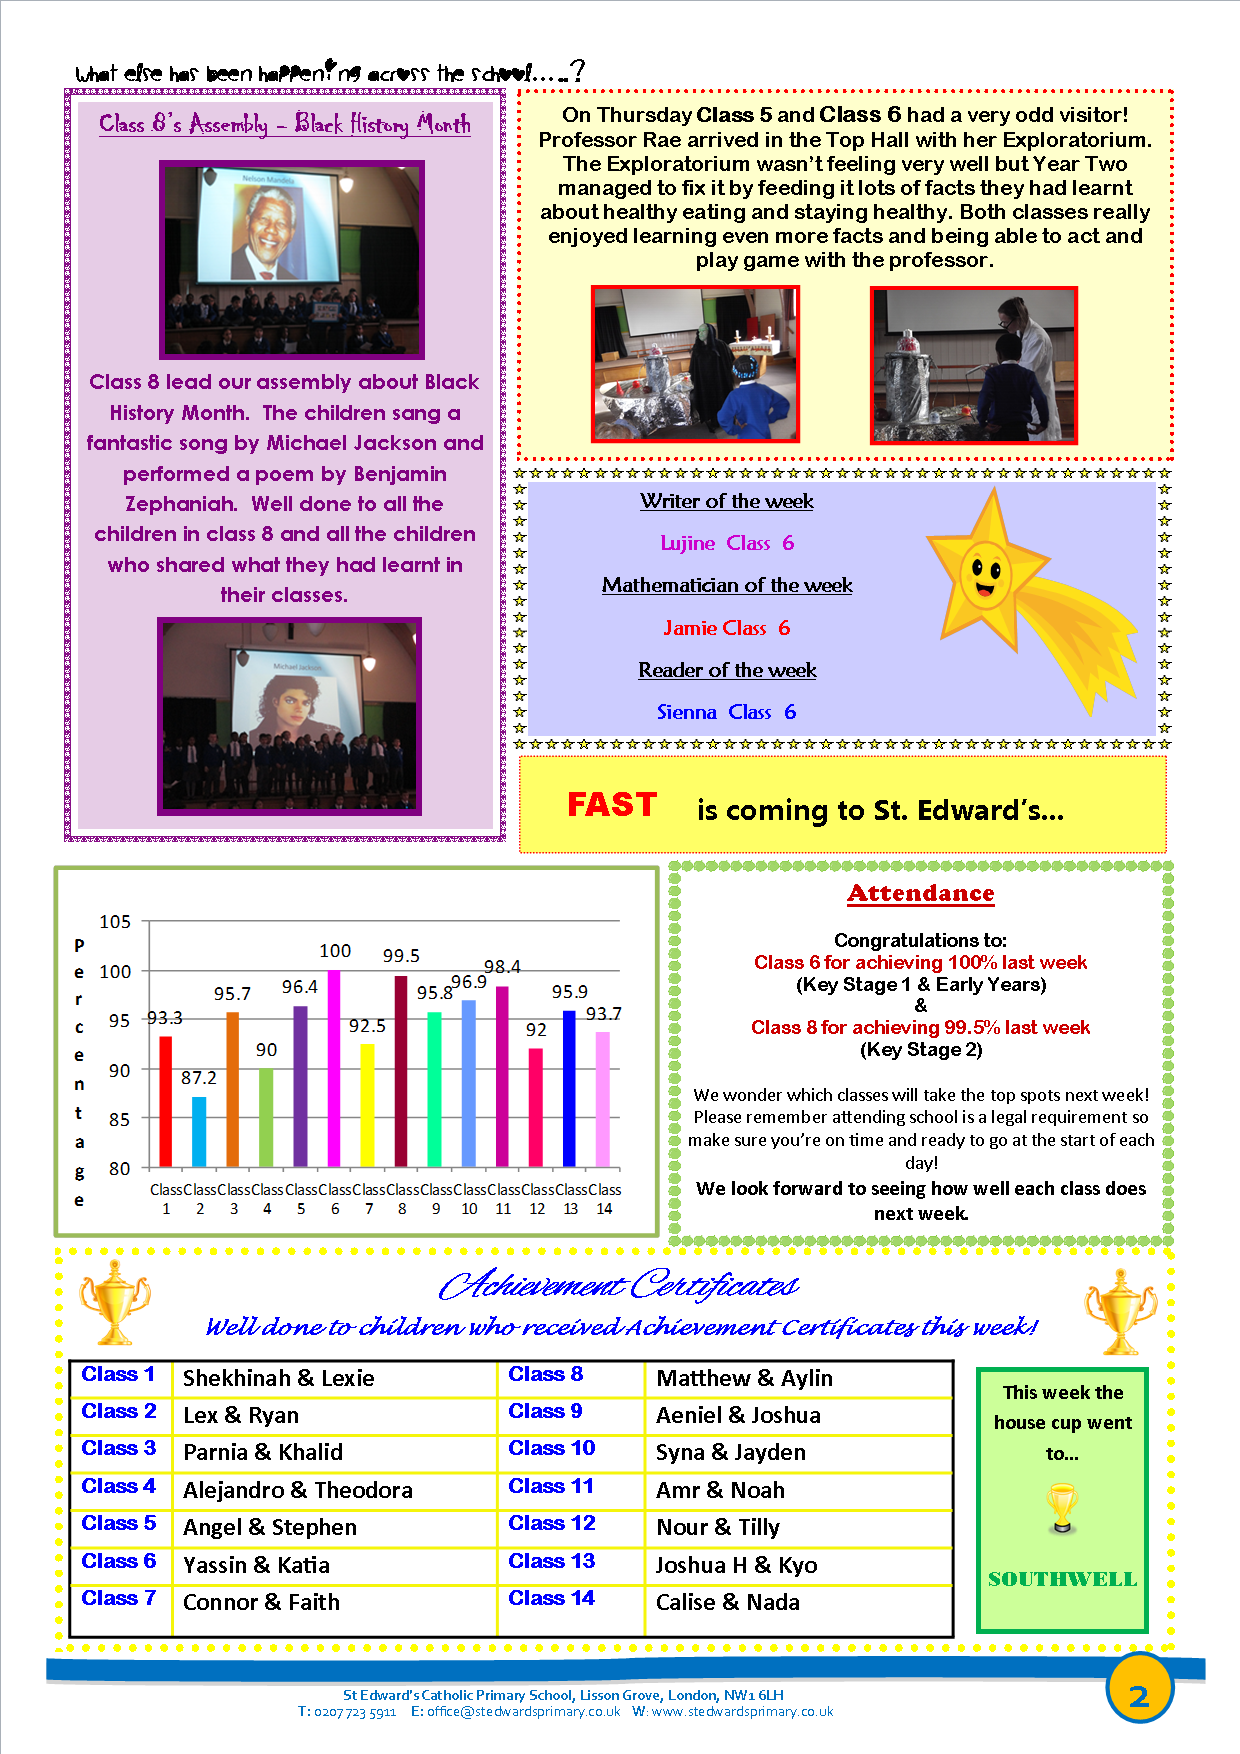 St Edward's Newsletter Issue 7 24 October 2014 2.png